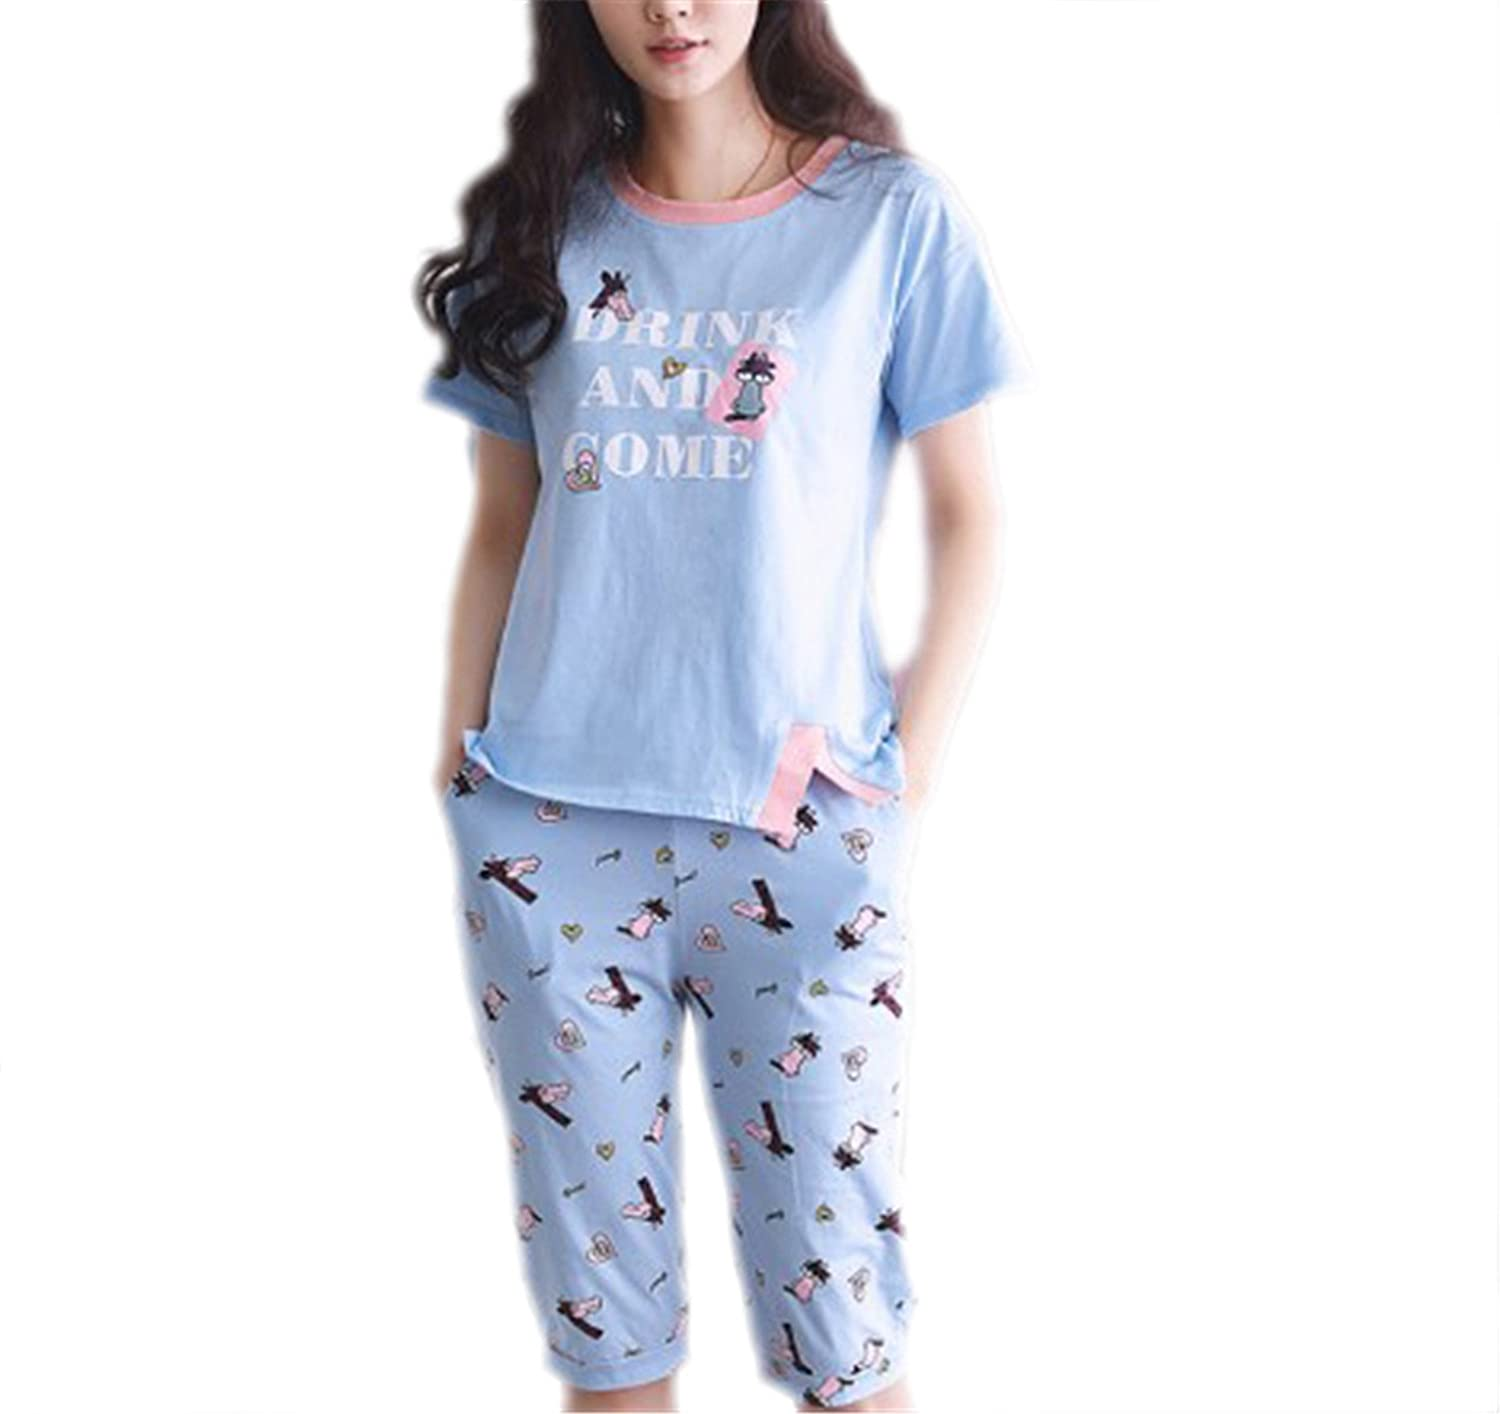 Amazon.com: DIDIUI women pajamas set cotton sleepwear tracksuit home clothing: Clothing